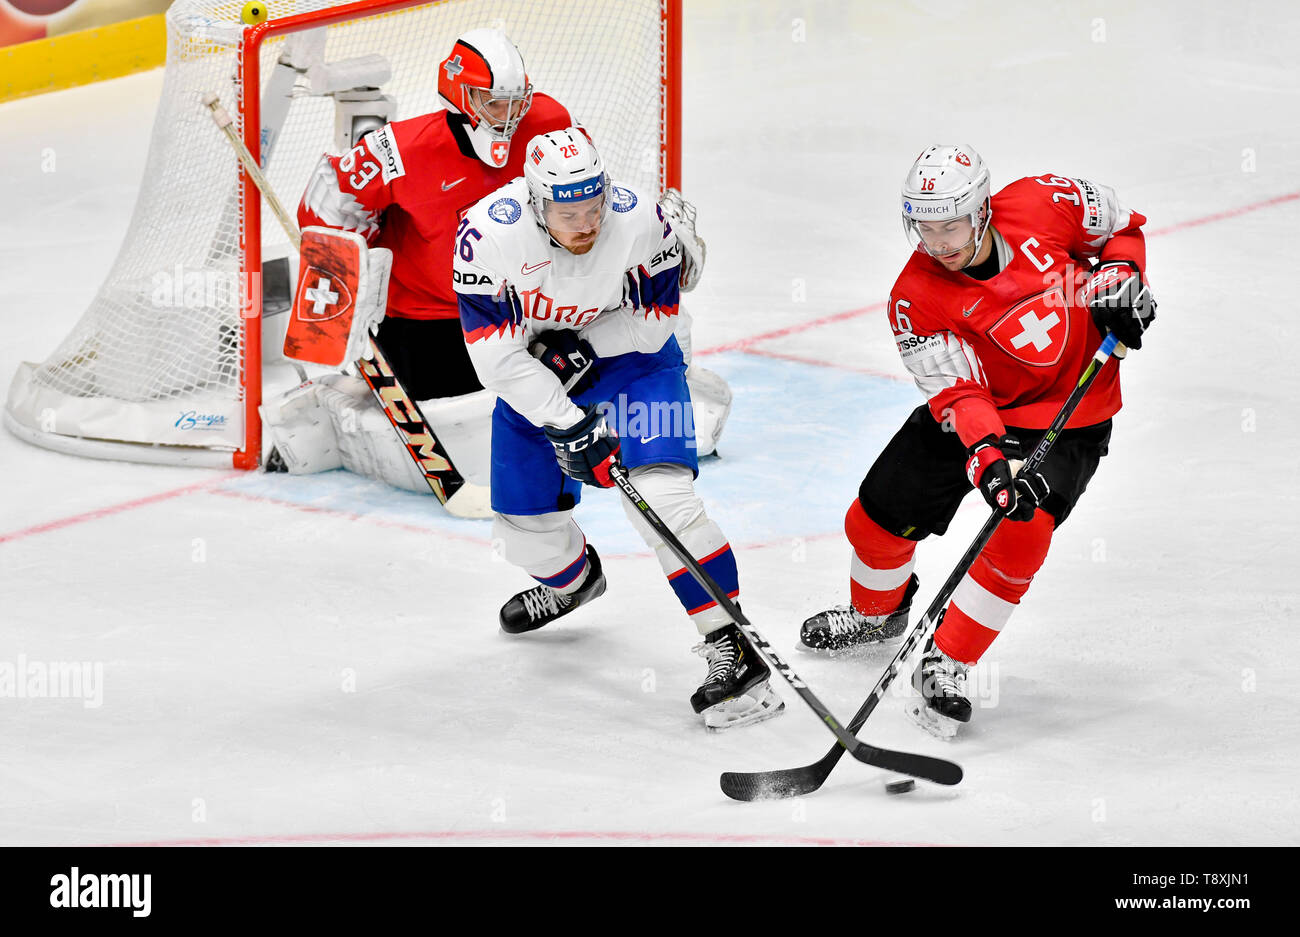 Bratislava, Slovakia. 15th May, 2019. L-R Goaltender Leonardo Genoni (CH), Kristian Forsberg (NOR) and Raphael Diaz (CH) in action during the match between Switzerland and Norway within the 2019 IIHF World Championship in Bratislava, Slovakia, on May 15, 2019. Credit: Vit Simanek/CTK Photo/Alamy Live News Stock Photo